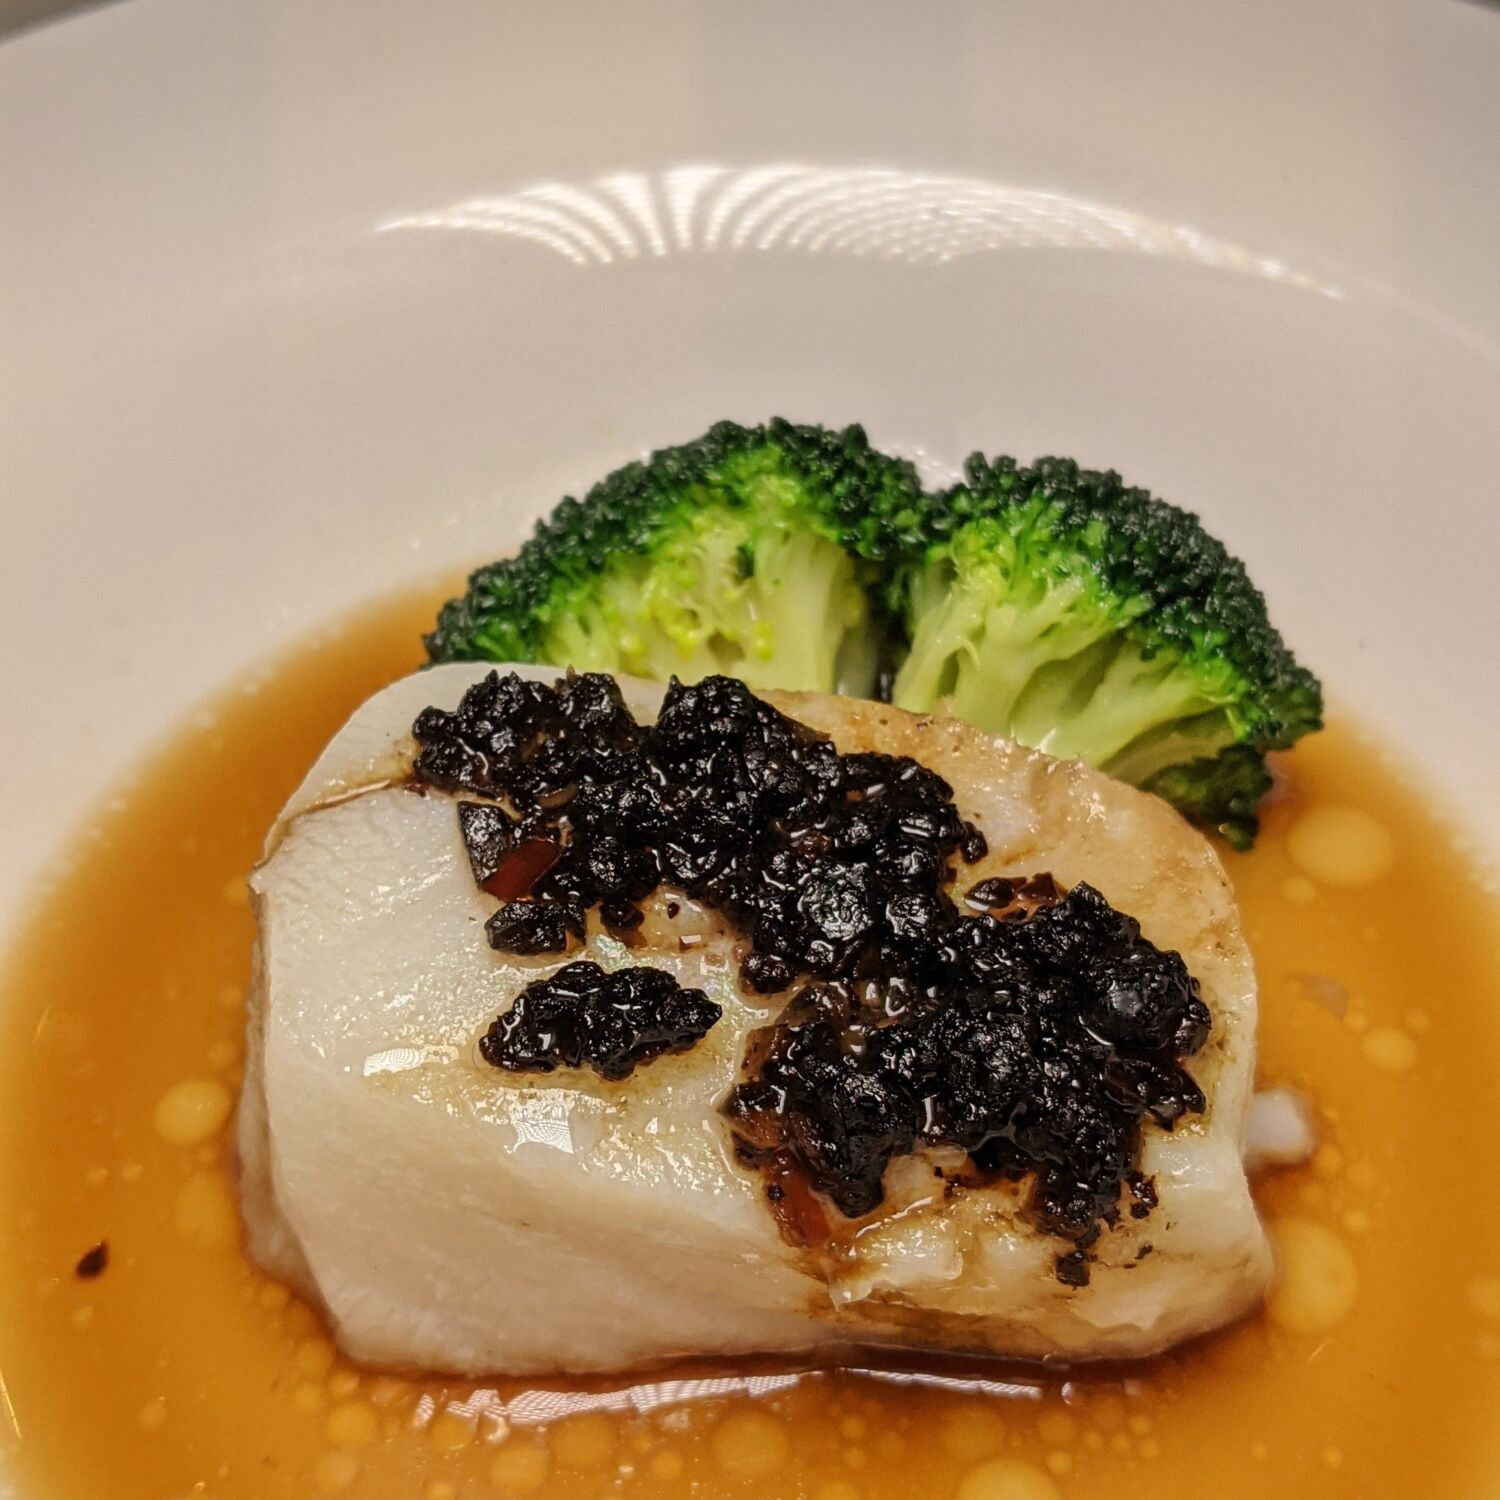 Raffles Hotel Singapore Yi by Jereme Leung Steamed Cod Fillet with Fermented Black Beans and Olives